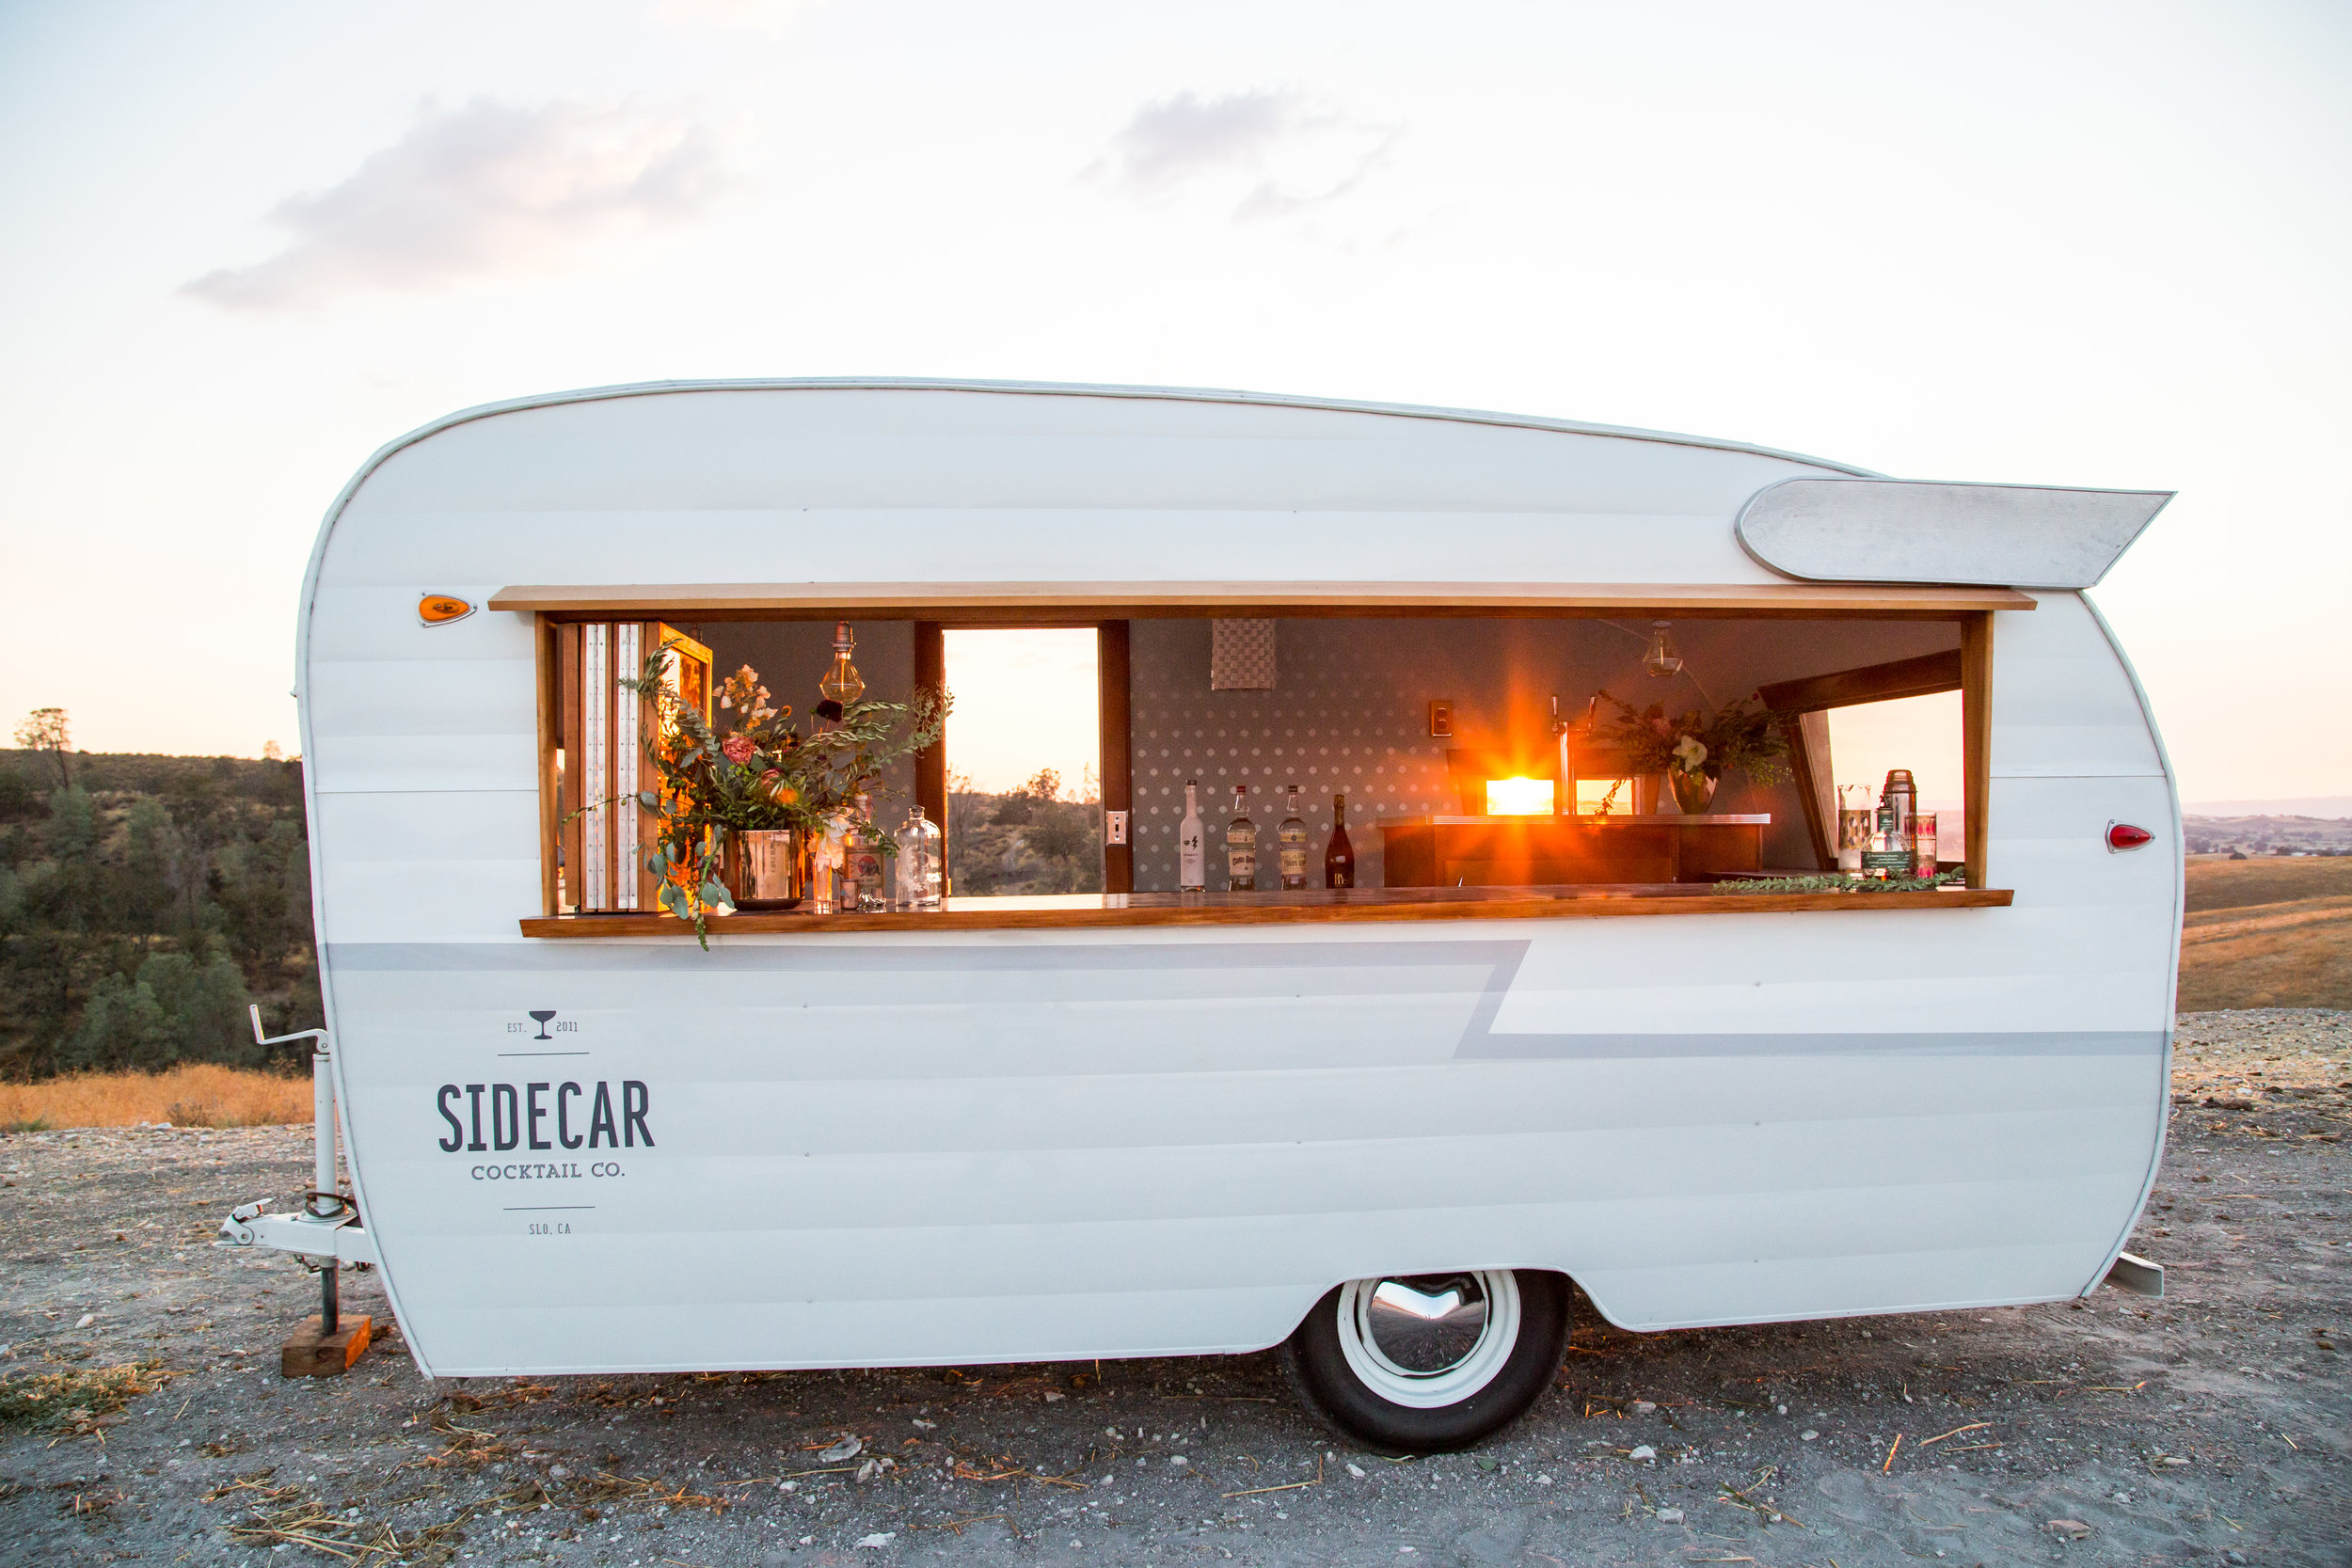 Our Sidecar Shasta bar turns is a head turner.... with its folding window, modern design and sleek paint job - it fits in wherever it goes! We partnered up with our favorite craft cocktail catering company,  Sidecar Cocktail Co.  to make sure that only the best drinks are served out of her window!